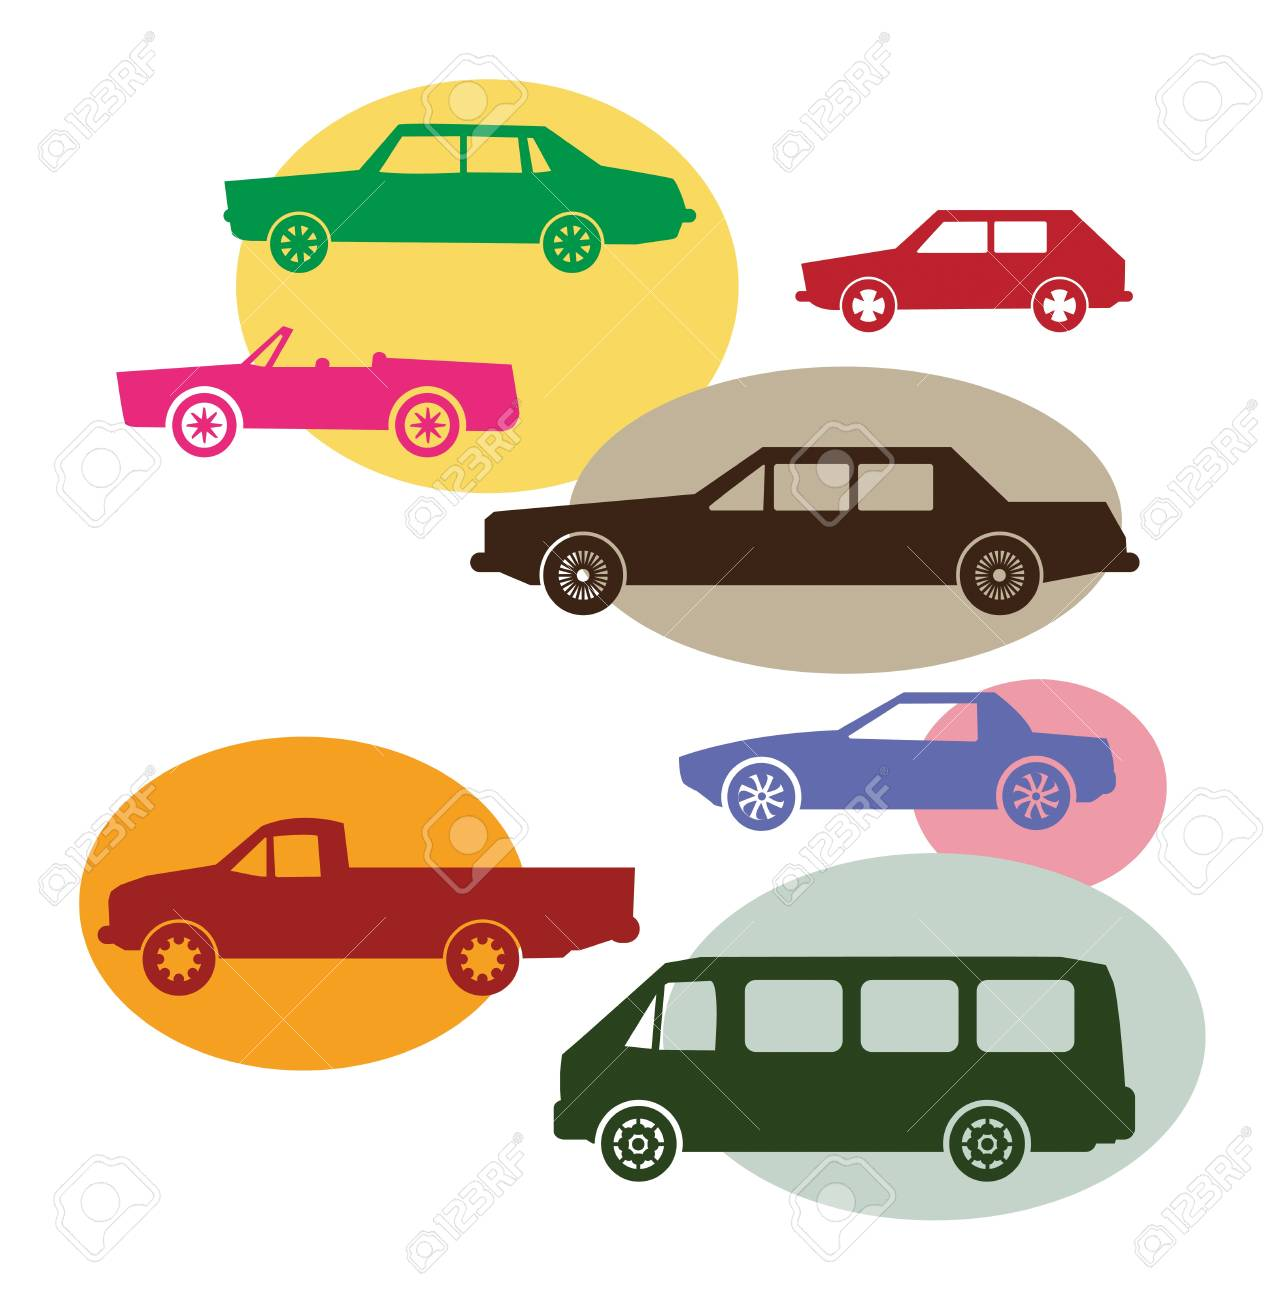 Set of different car symbols royalty free cliparts vectors and set of different car symbols stock vector 15233669 biocorpaavc Gallery